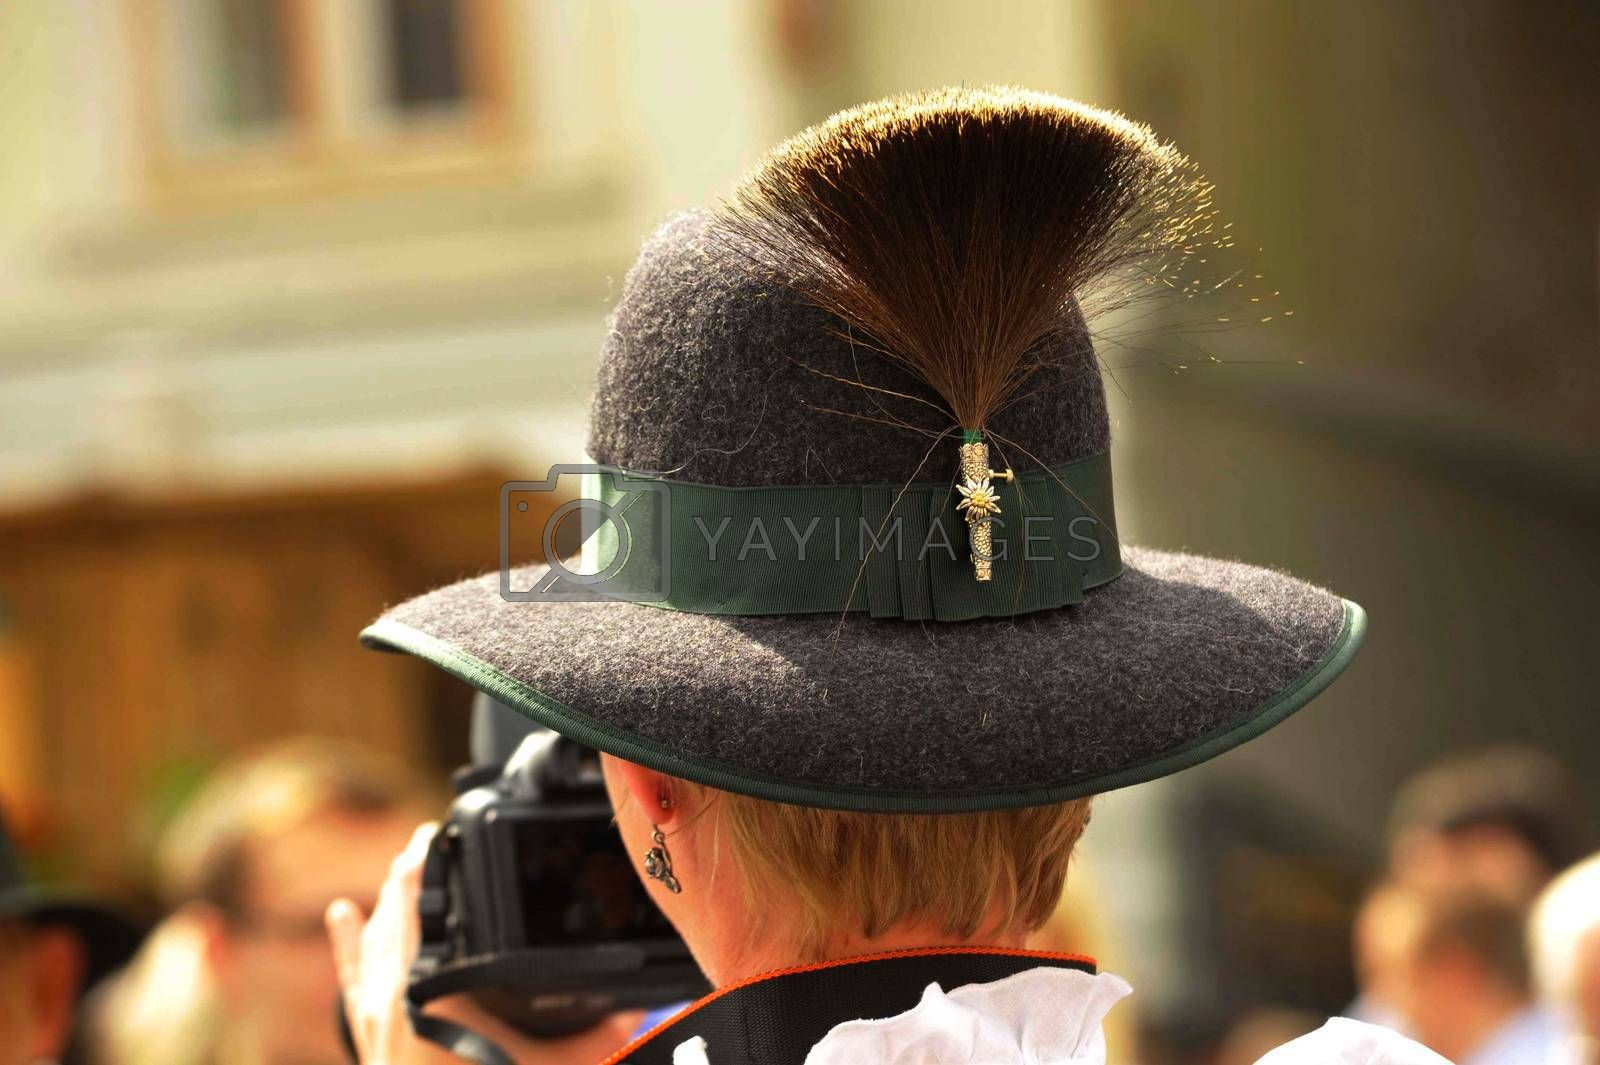 tuft of chamois hair worn as a hat decoration, part of traditional costume